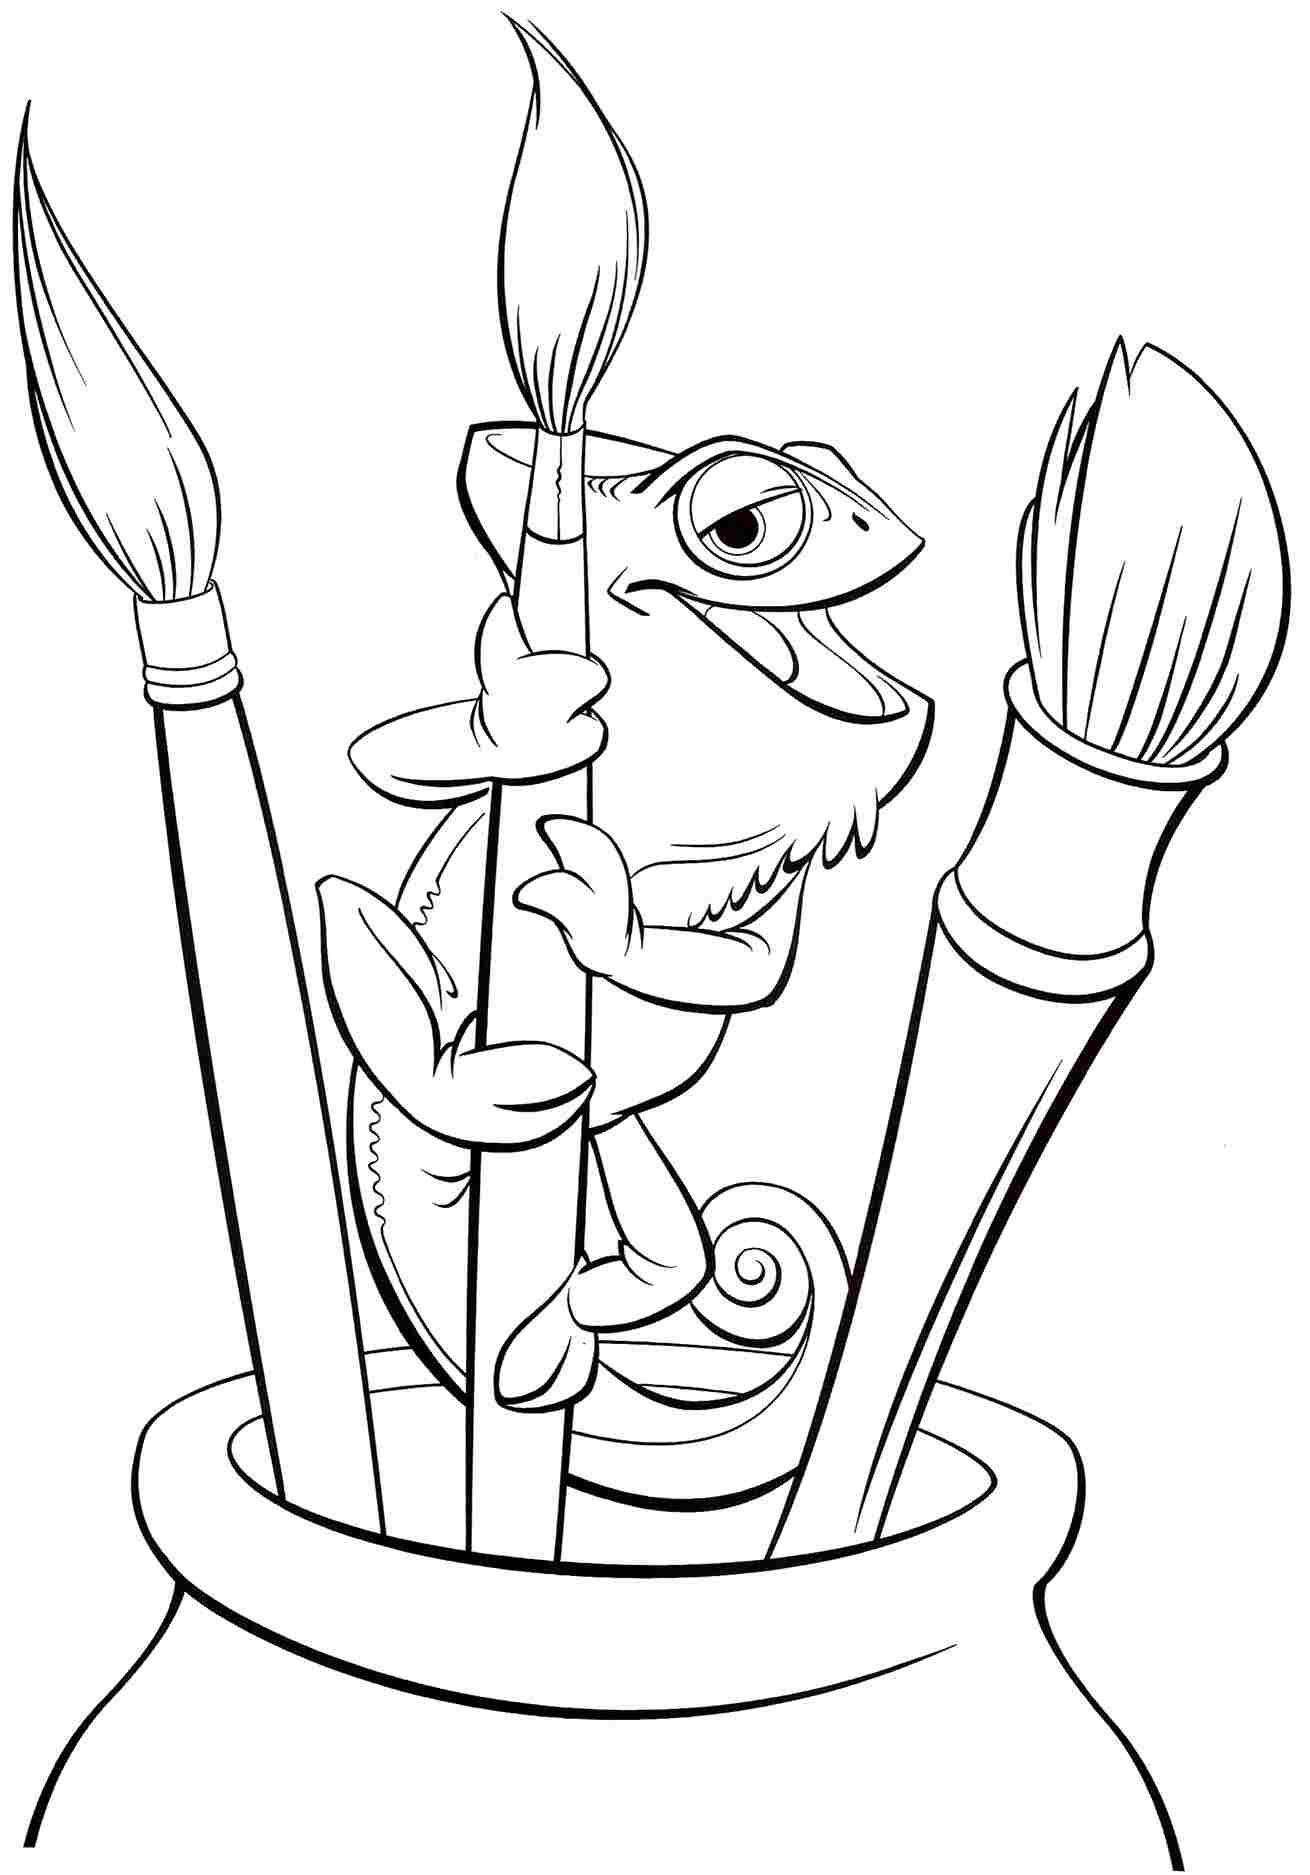 If You Want To Print The Disney Princess Tangled Rapunzel Colouring Pages Printable For Kids